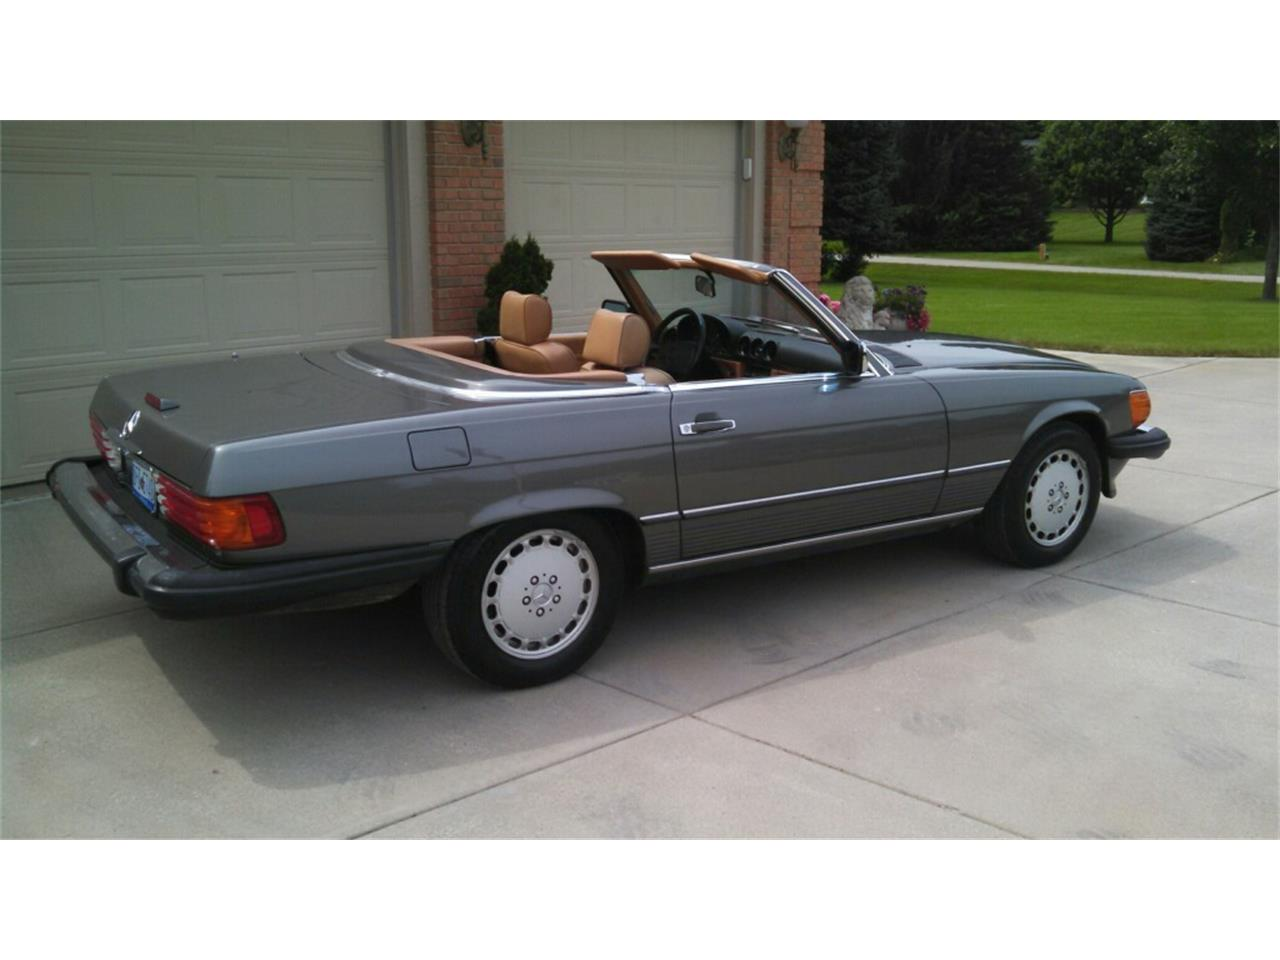 1988 Mercedes Benz 560sl For Sale Cc 1139108 Fuel Filter Large Picture Of 88 Oexw